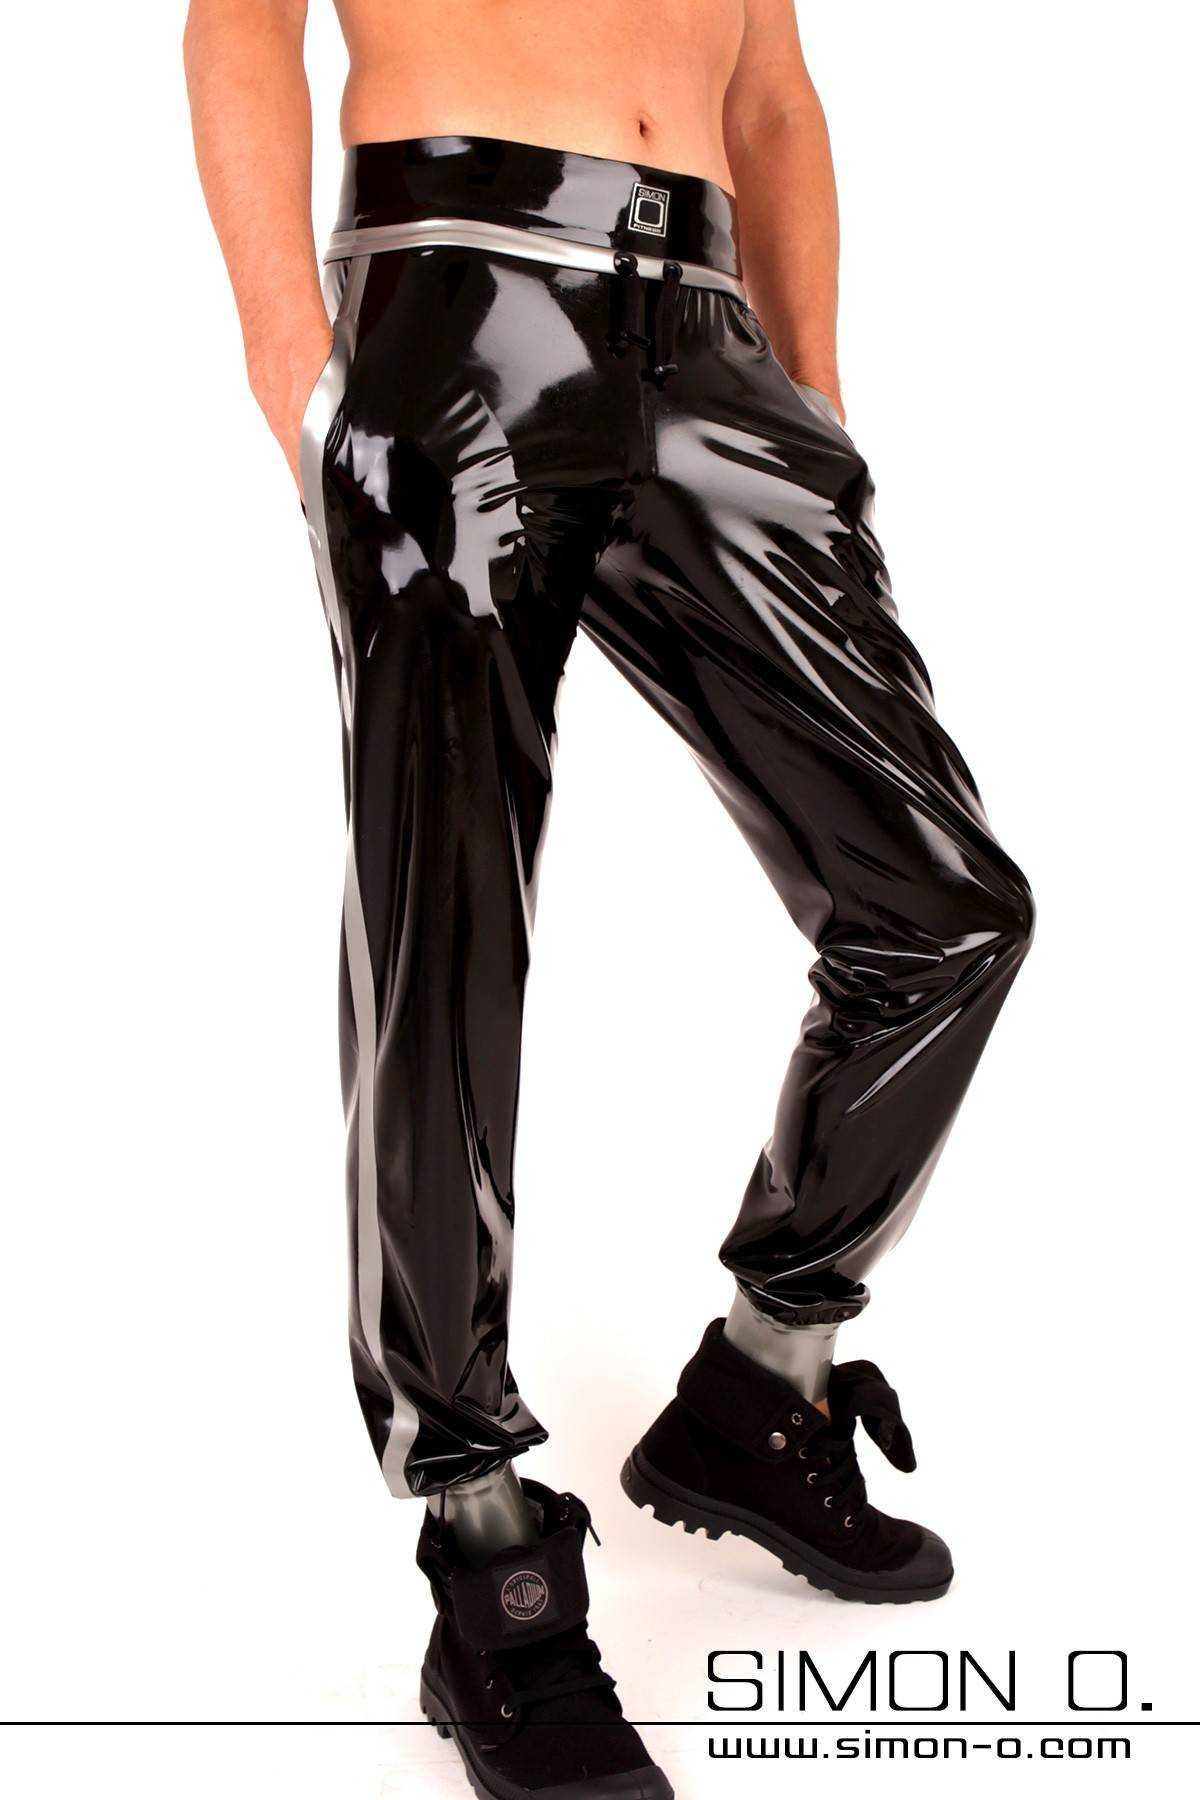 Glossy fitness pants for men with pockets in black with silver